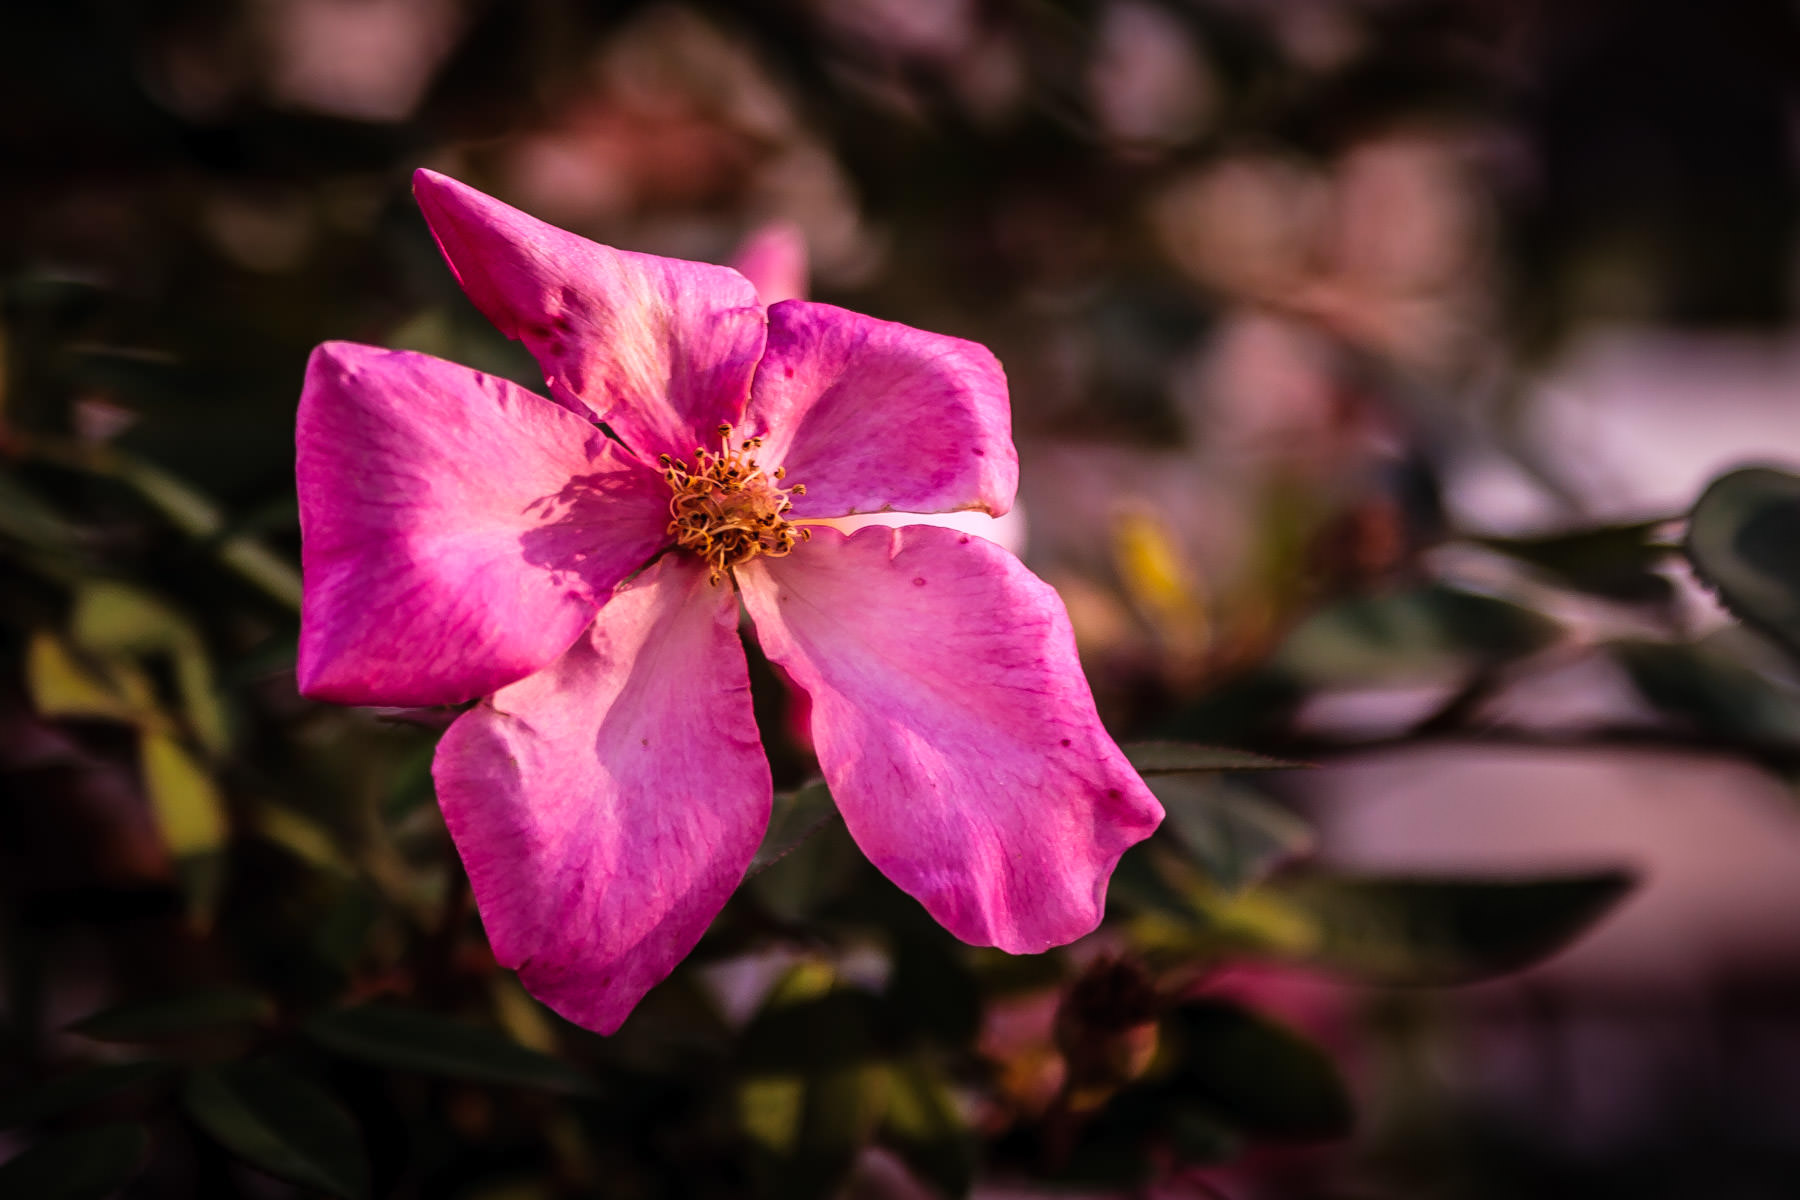 A pink flower spotted in Nacogdoches, Texas.